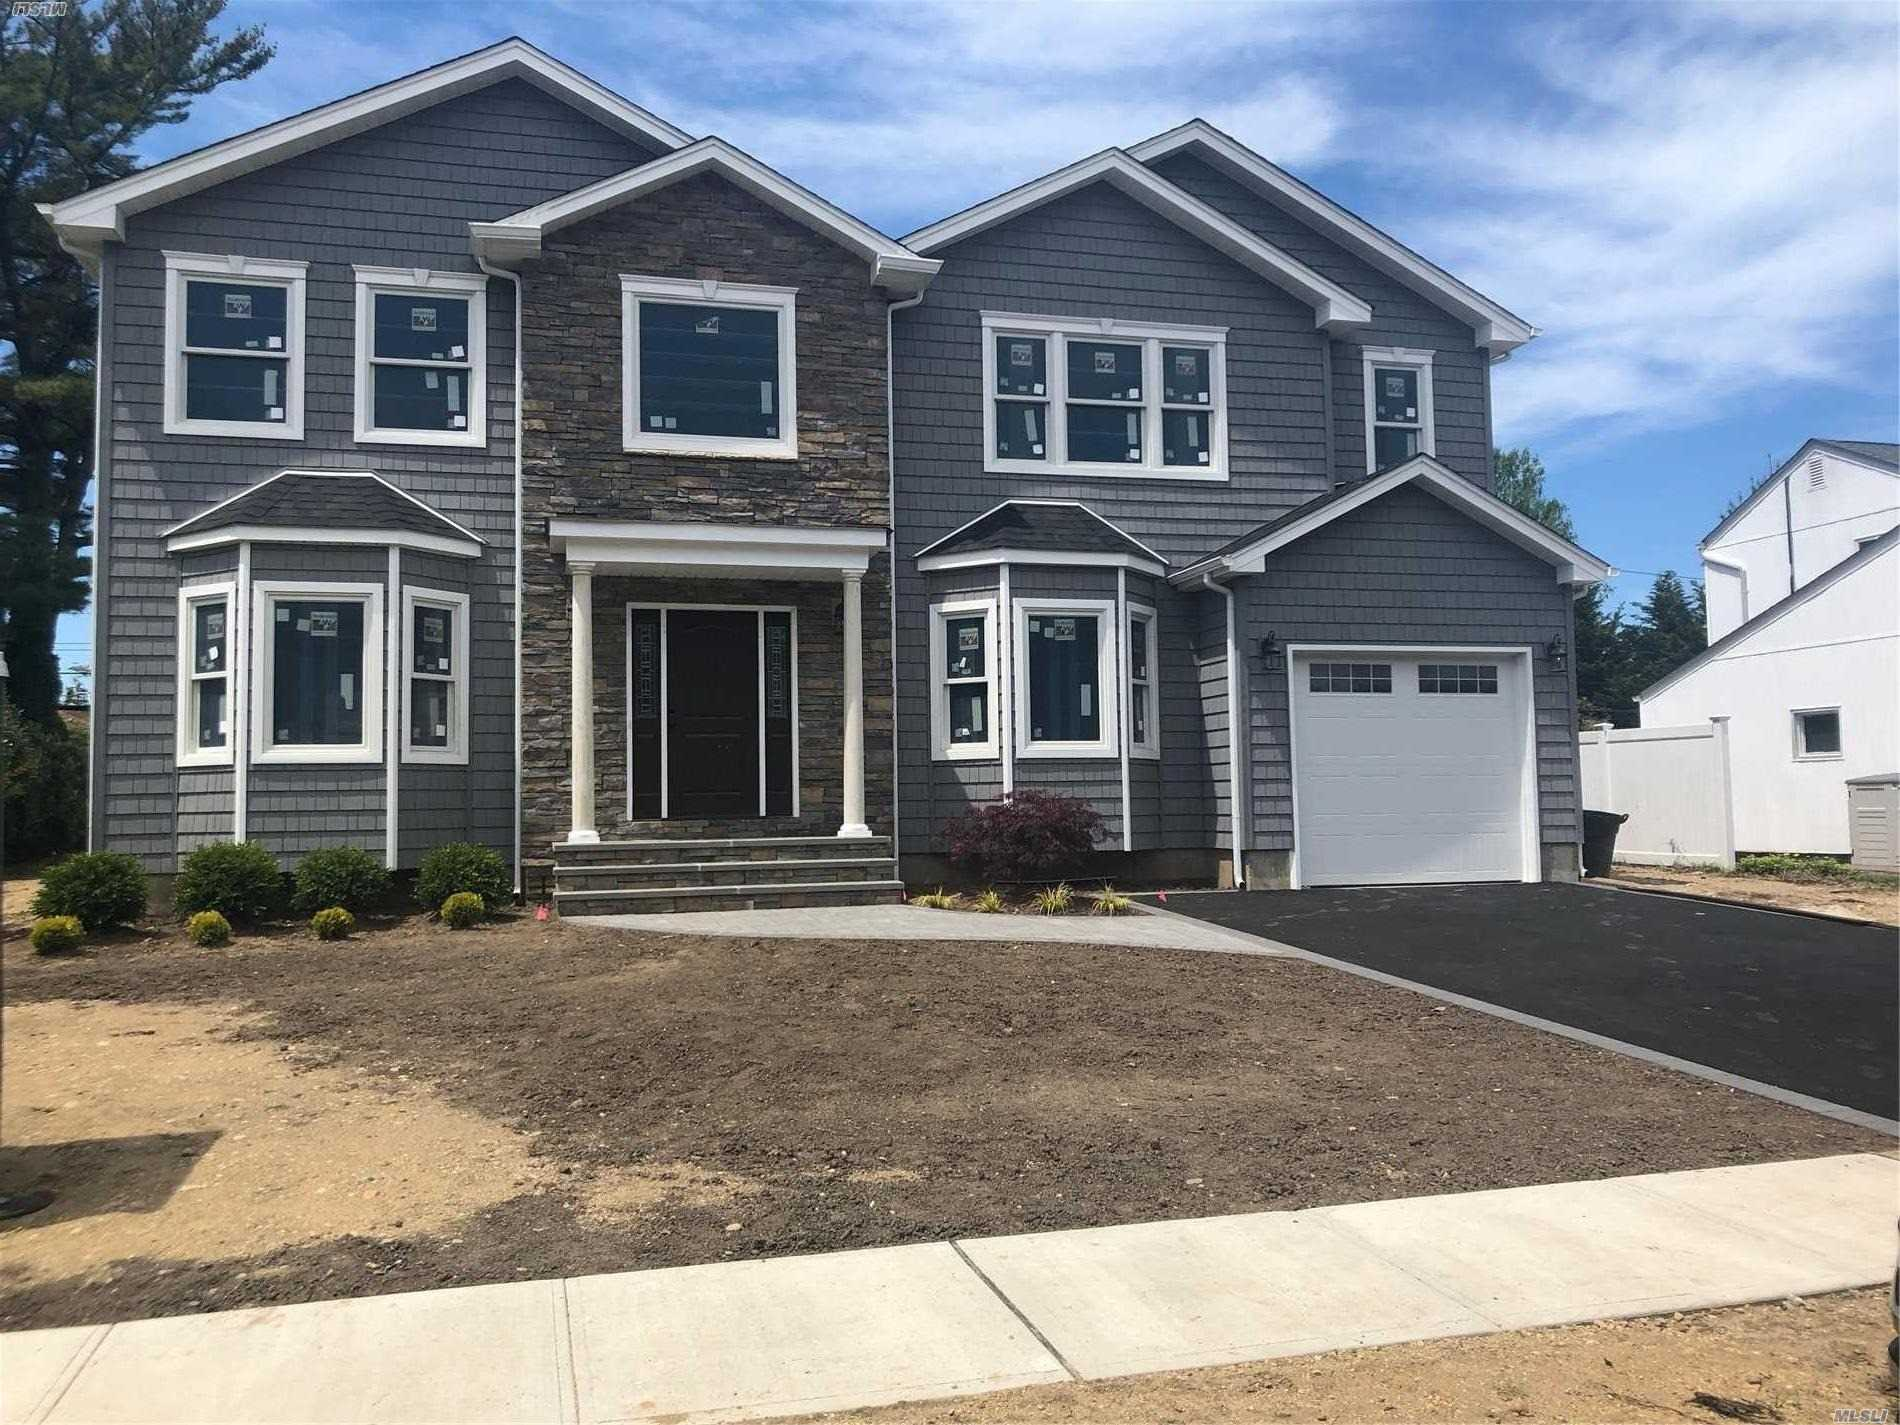 Extraordinary New Construction, Center Hall Colonial by A Premier Builder Offering High End Finishes. 5 Bedroom, 3 Full Bath, Designer Kitchen W Island And Pantry. Desirable Plainview School. Move In Date June 2019.